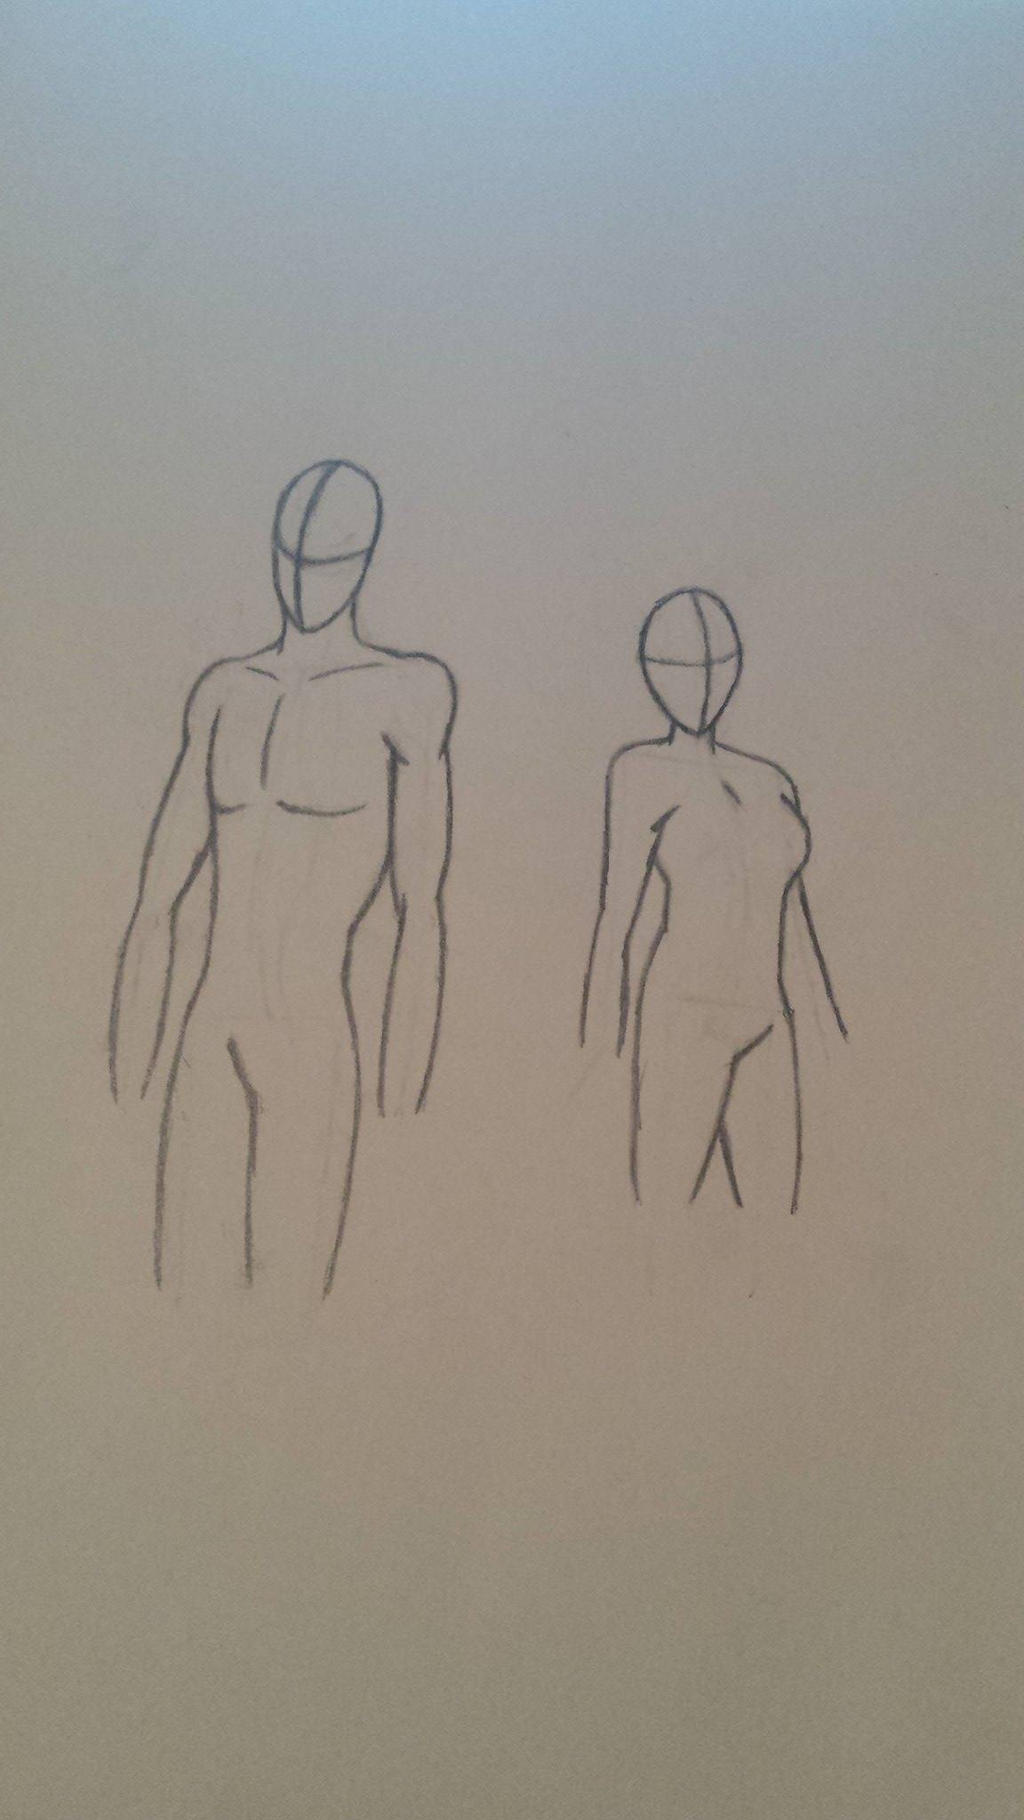 Male and Female Body Practice by MosakeJarakio